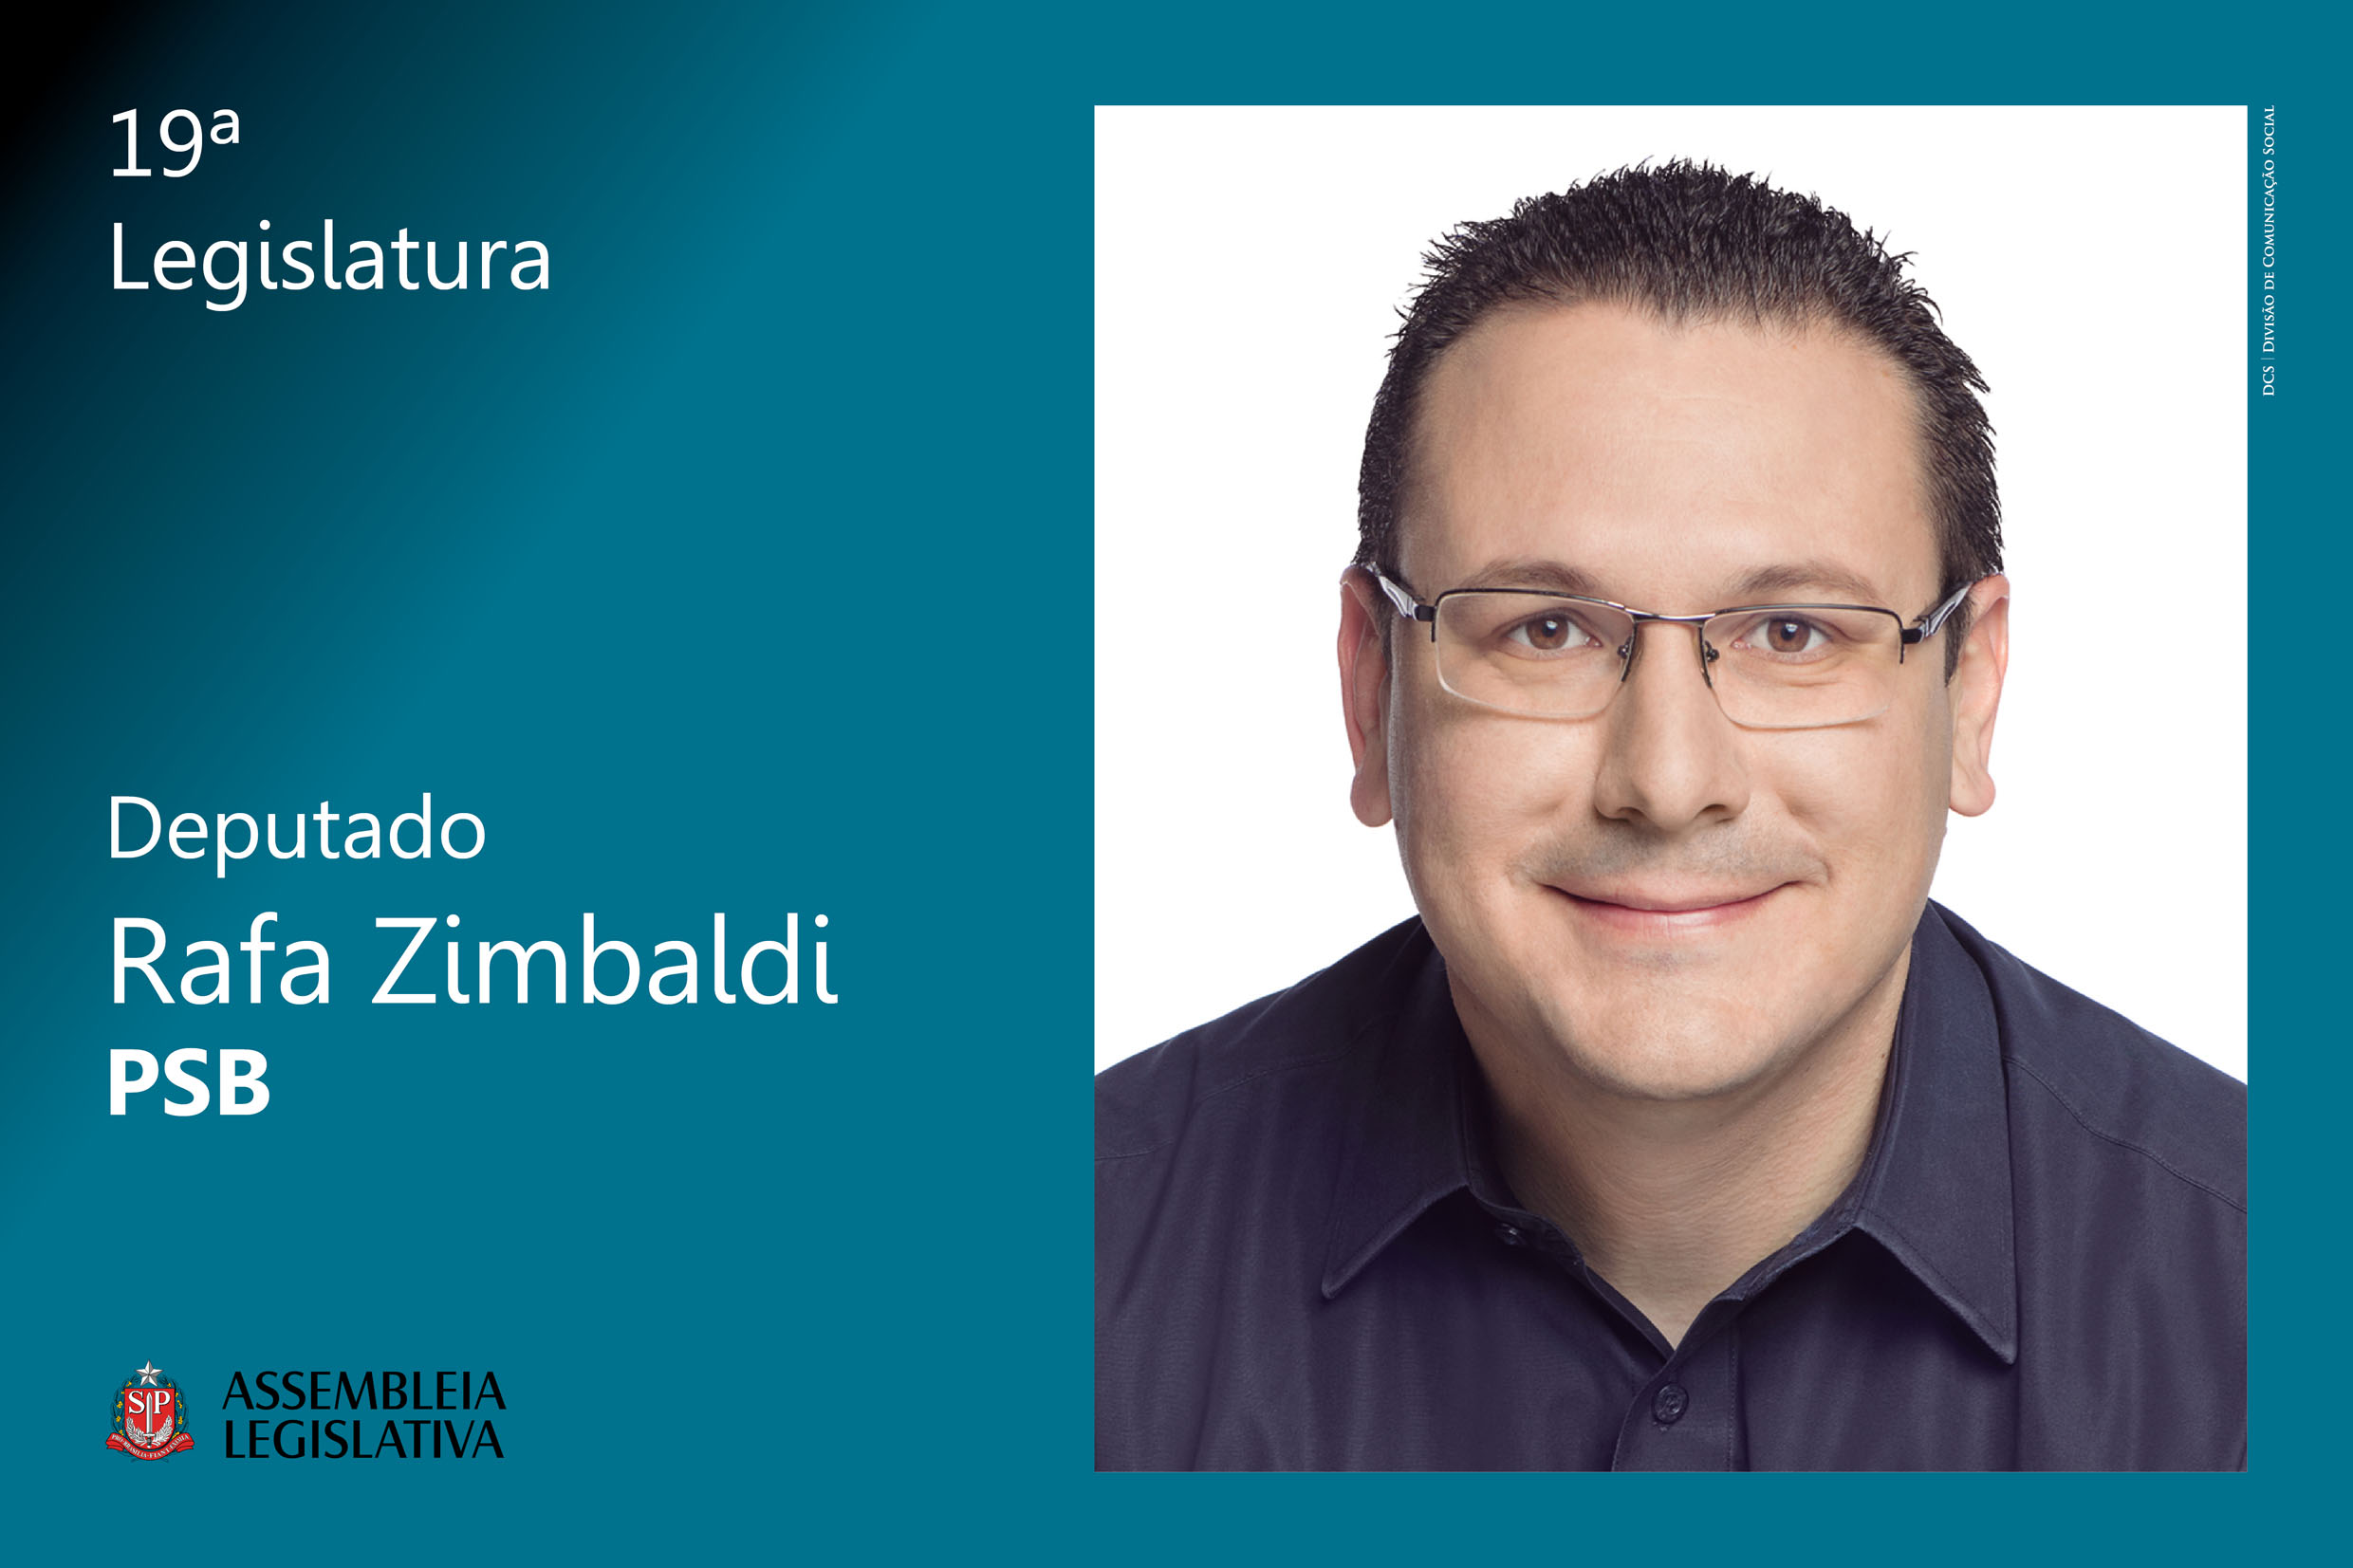 Rafa Zimbaldi (PSB)<a style='float:right' href='https://www3.al.sp.gov.br/repositorio/noticia/N-03-2019/fg231273.jpg' target=_blank><img src='/_img/material-file-download-white.png' width='14px' alt='Clique para baixar a imagem'></a>